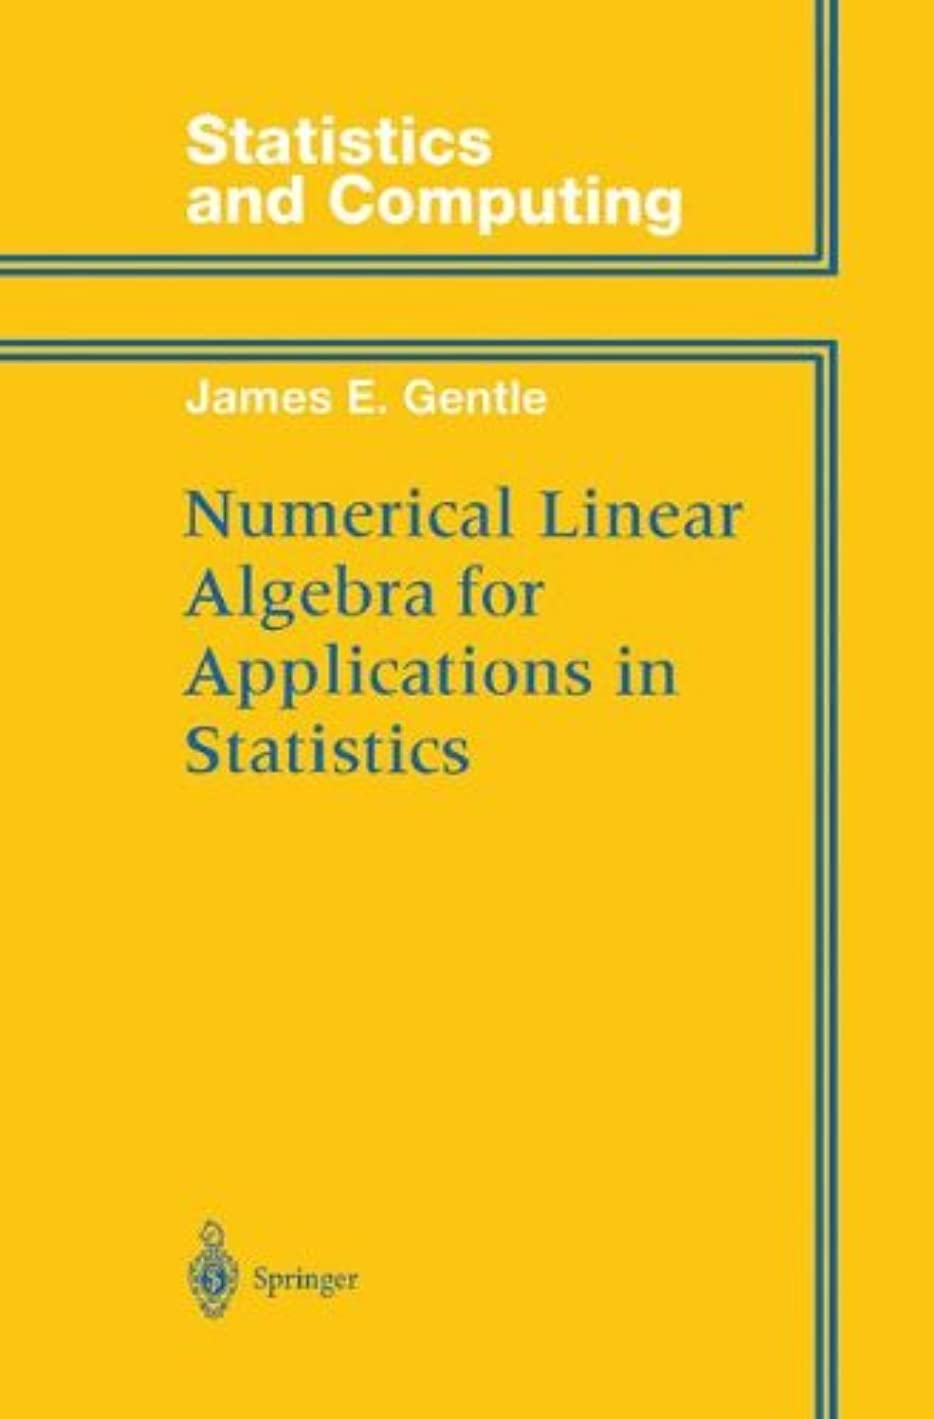 フロー政権ミュウミュウNumerical Linear Algebra for Applications in Statistics (Statistics and Computing)